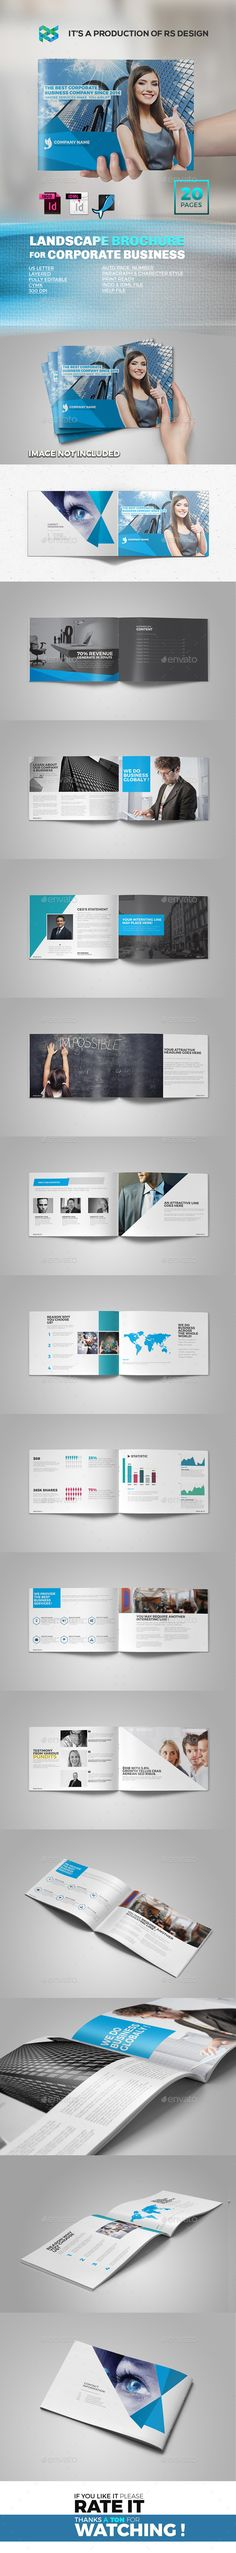 Landscape Corporate Brochure Template InDesign INDD. Download here: http://graphicriver.net/item/landscape-corporate-brochure-/16822846?ref=ksioks